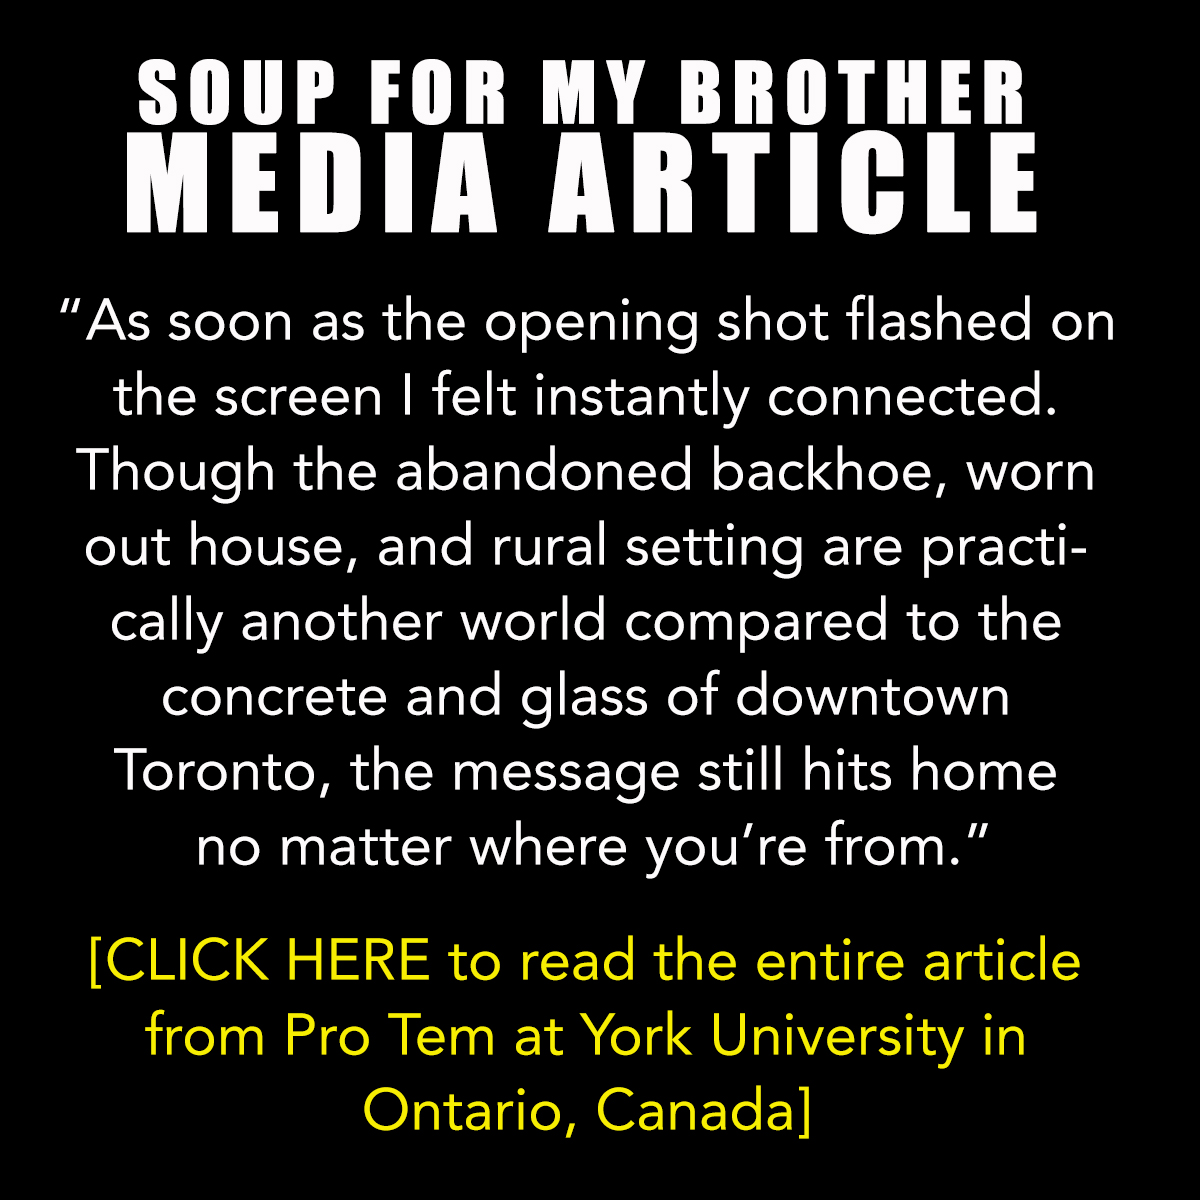 Pro Tem Article - Soup For My Brothe